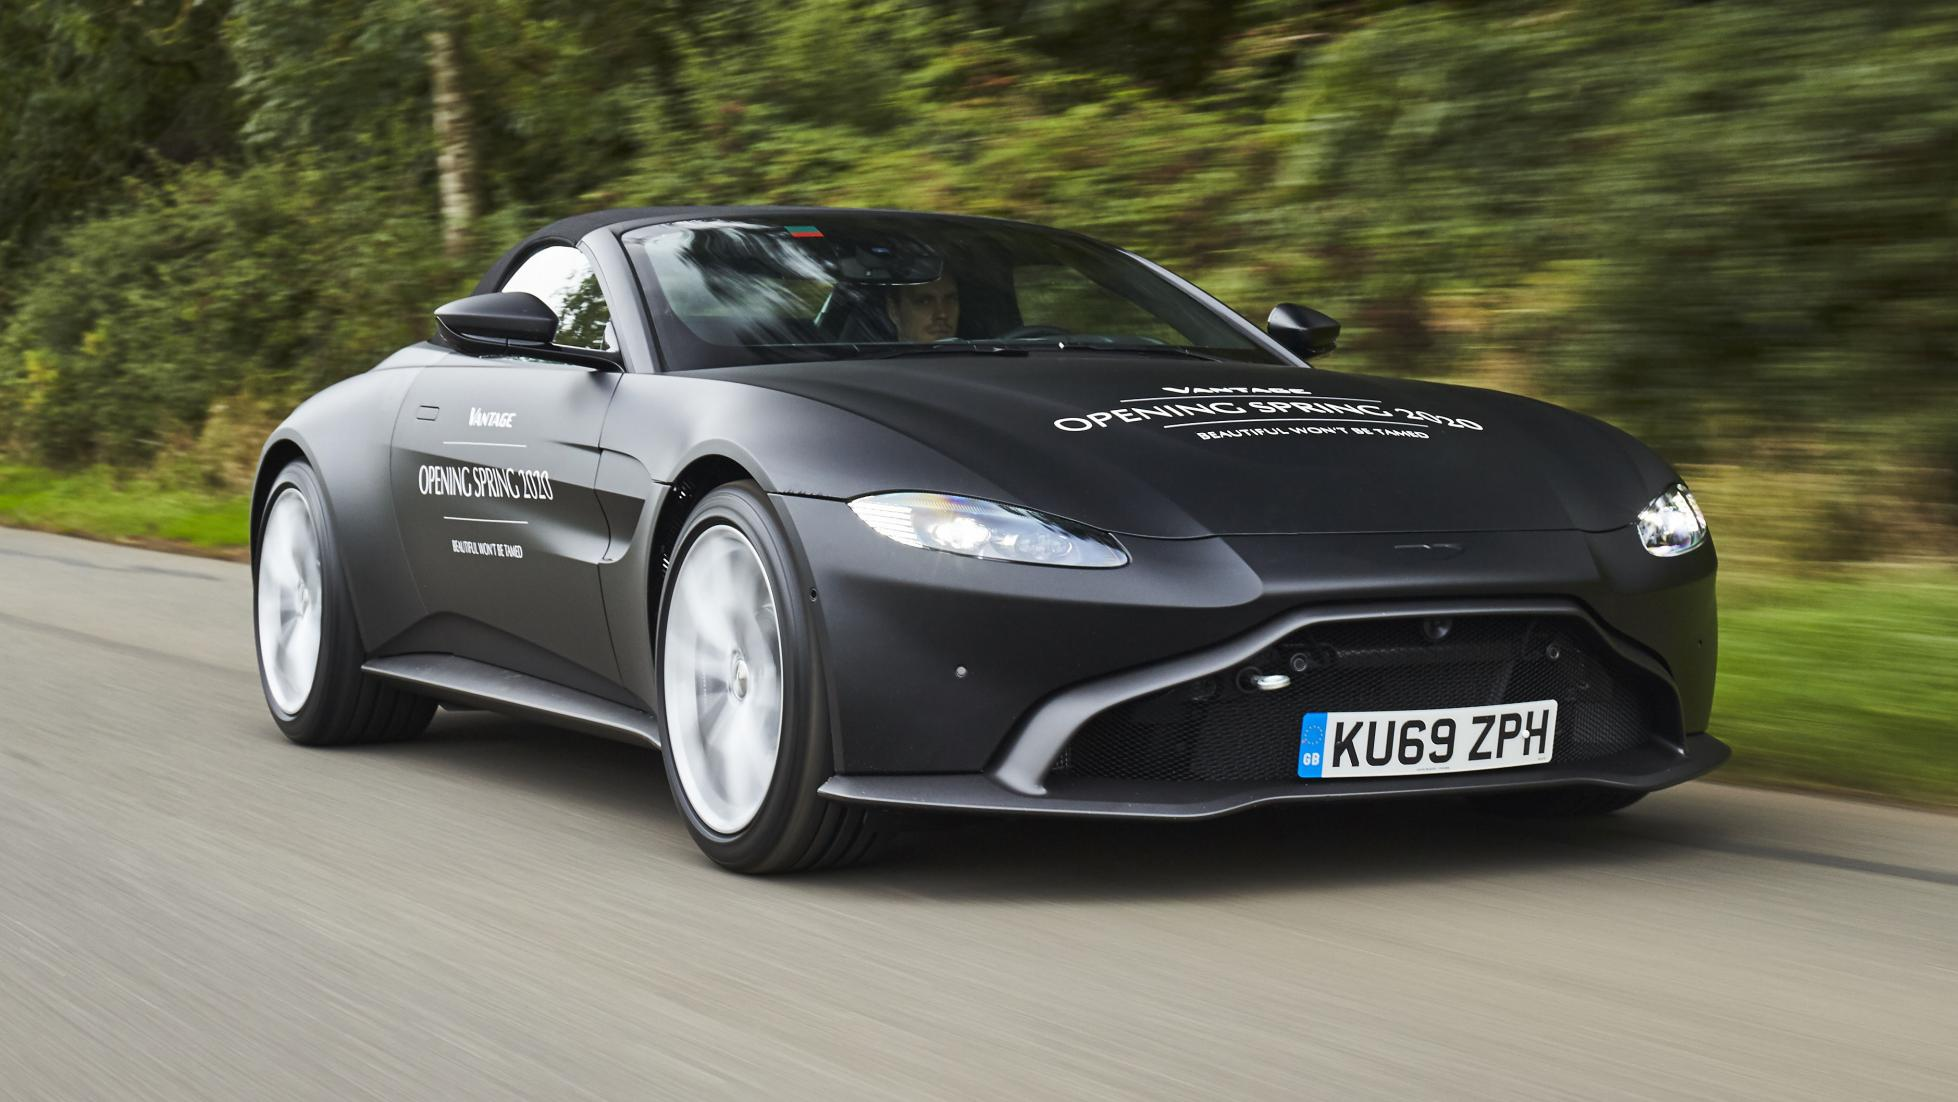 Here's your first official look at the new Aston Vantage Roadster